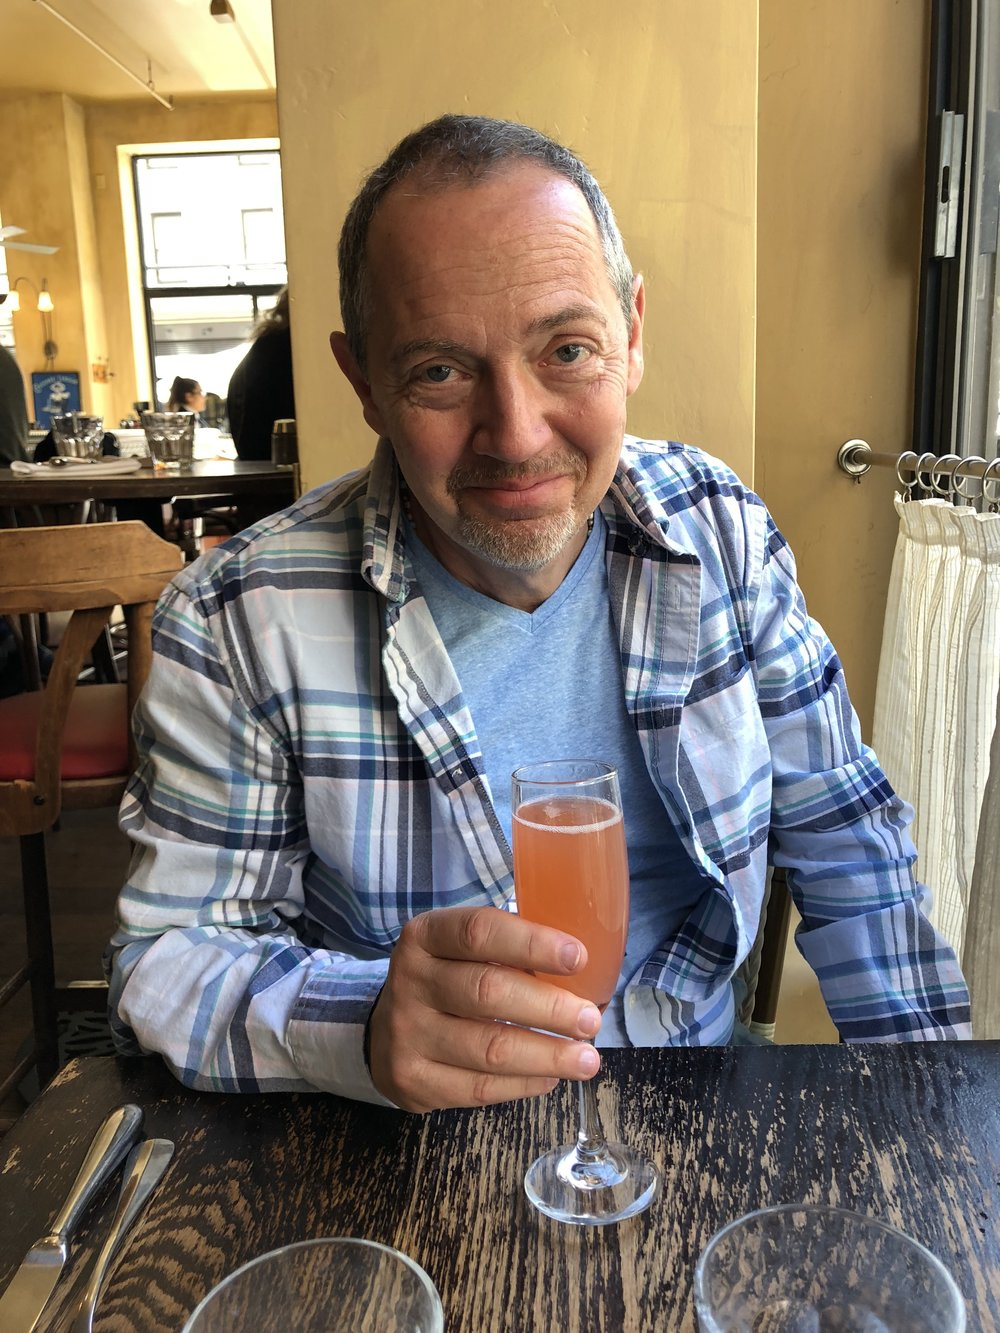 Bevan Dufty clutches a strawberry Bellini at Café de la Presse in Union Square at 4:24pm PST on April 21, 2018 while taking a break from shoe shopping with Partner Corey Lambert.